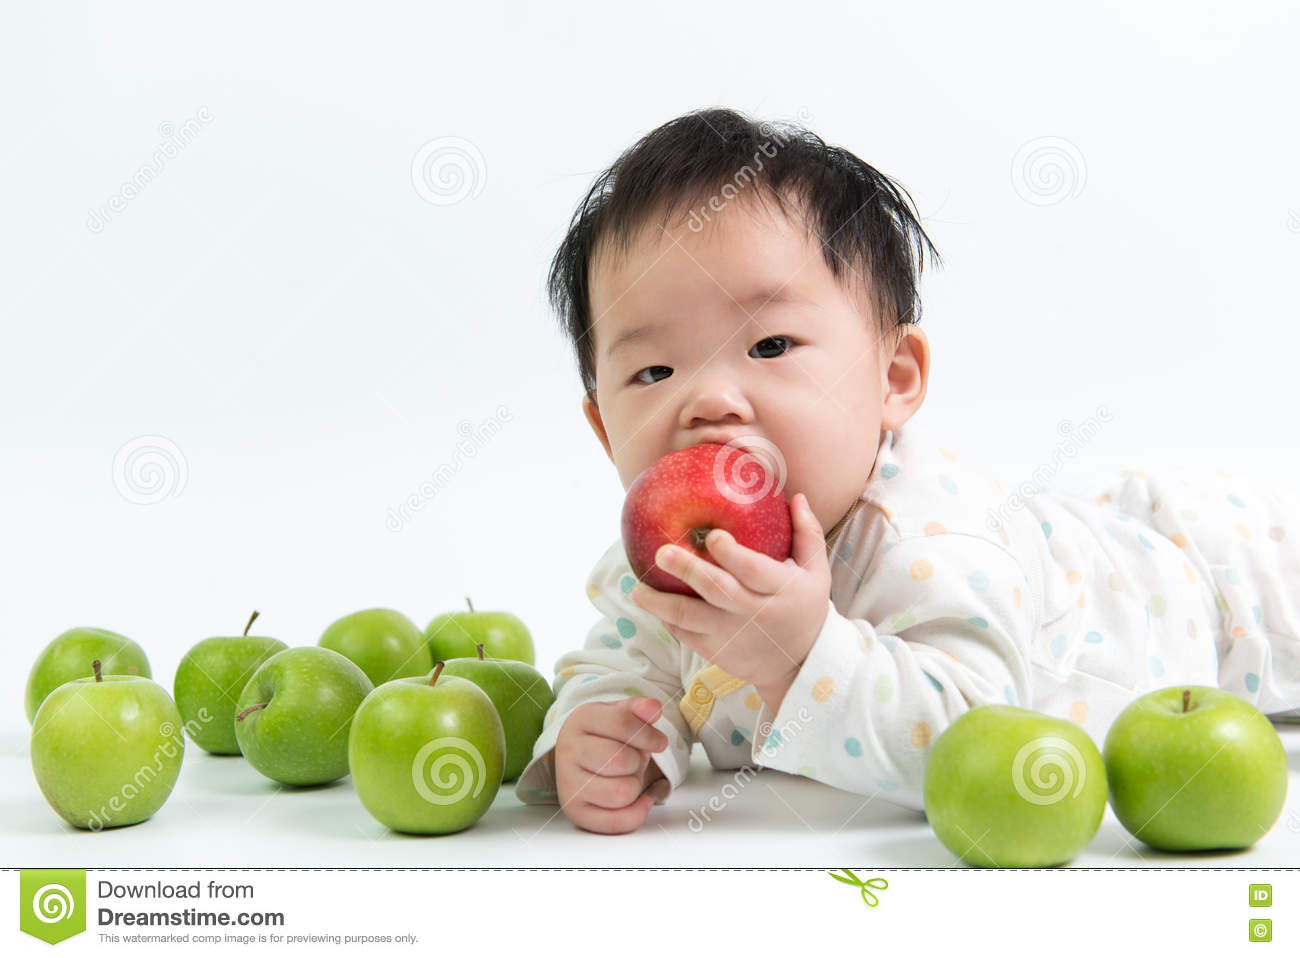 Seems asian baby eating were